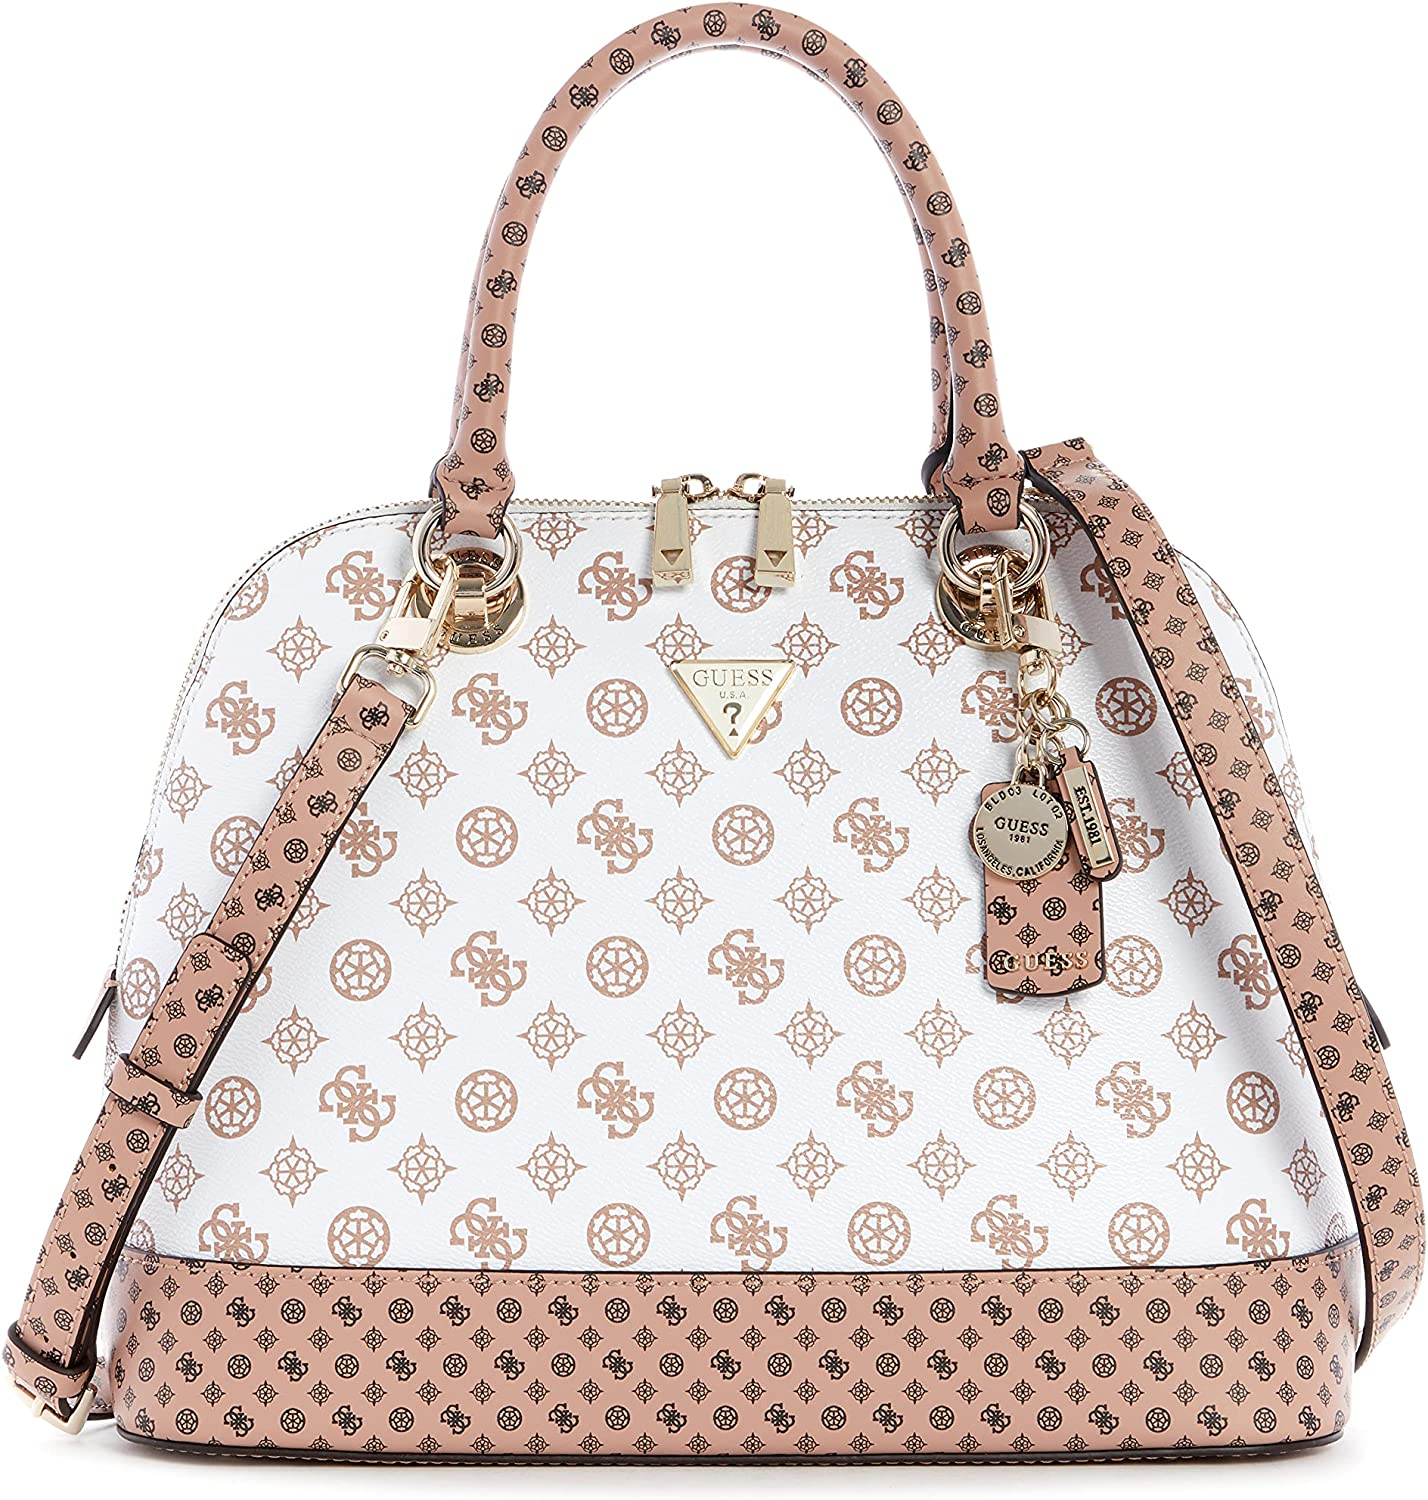 GUESS Cessily Popularity Dome Satchel New sales